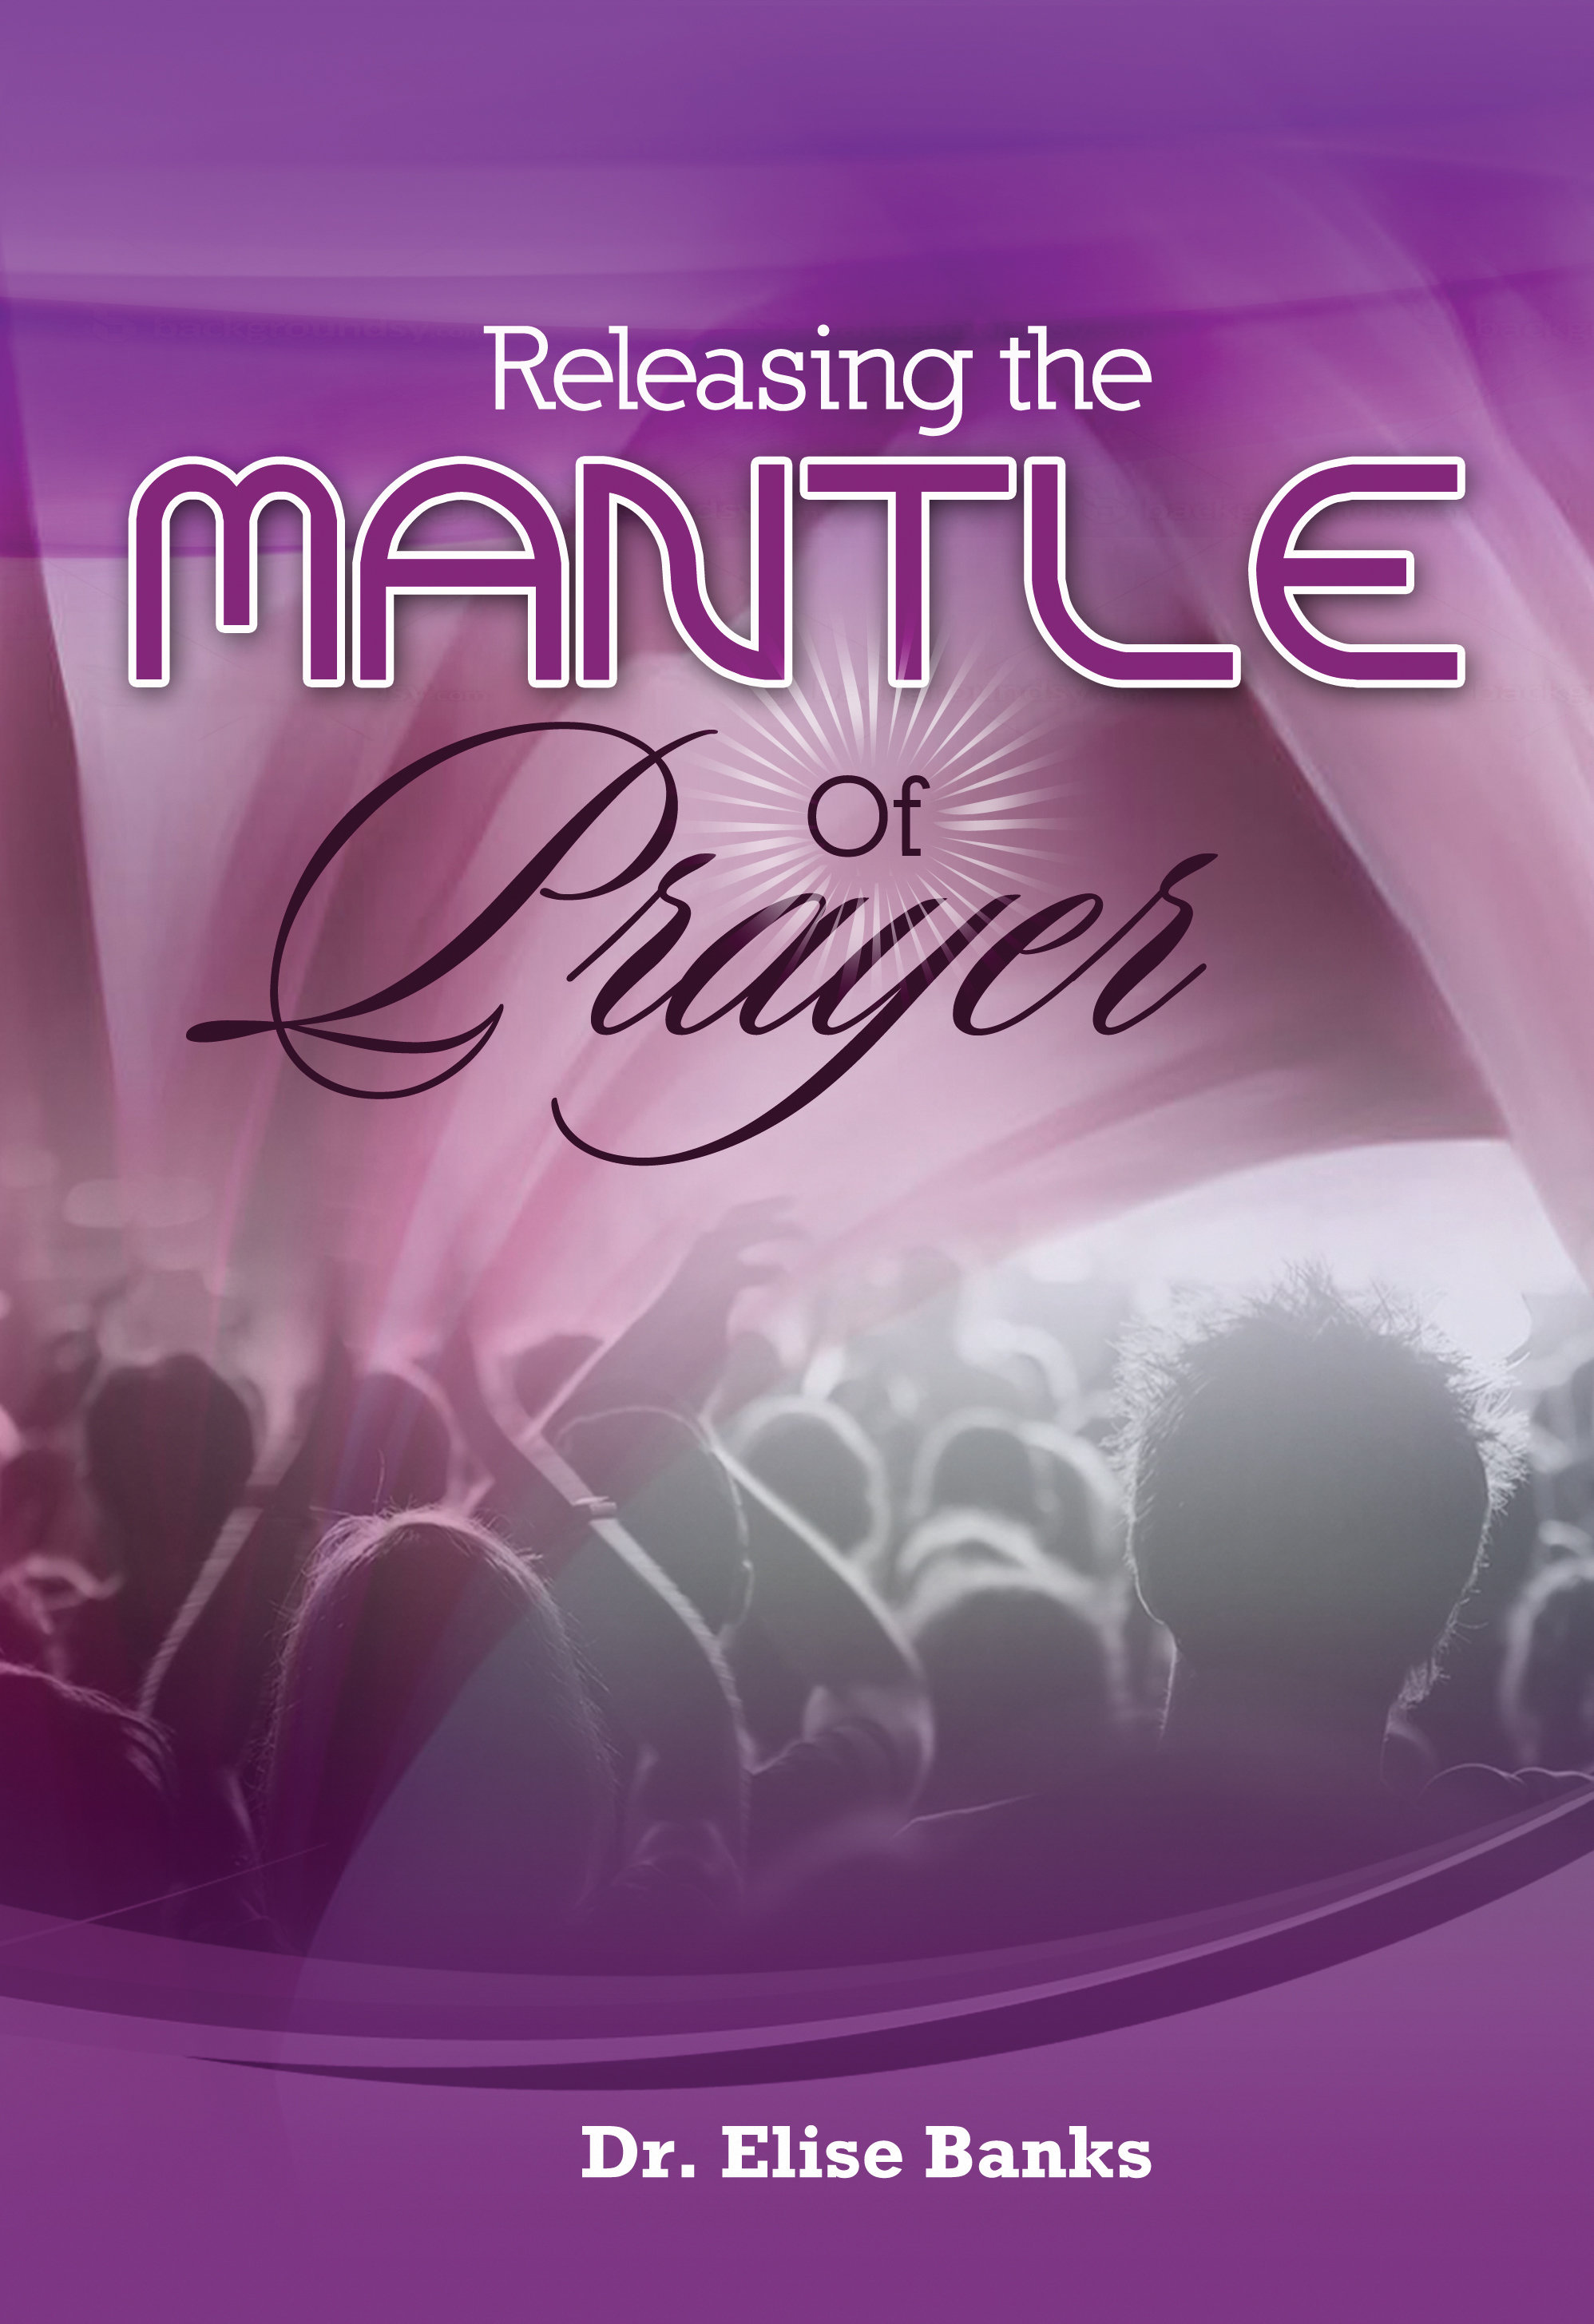 Releasing the Mantle of Prayer Book 00000